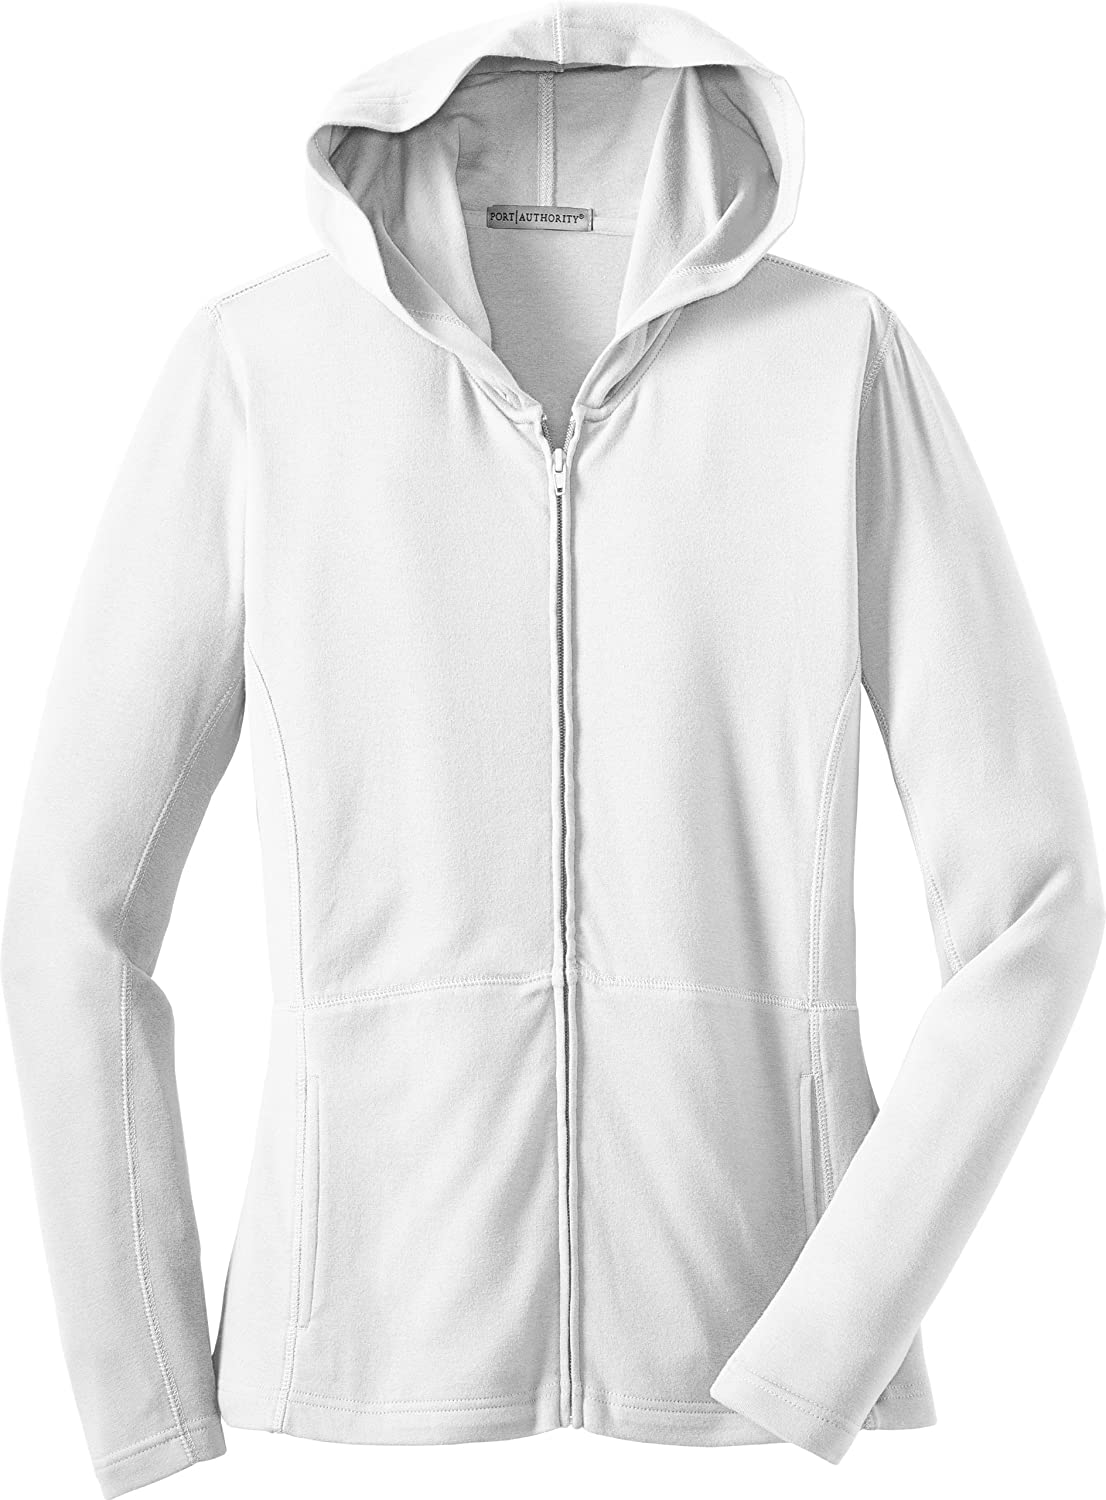 Port Authority Women's Stretch Cotton Full-Zip Jacket White L519 4XL